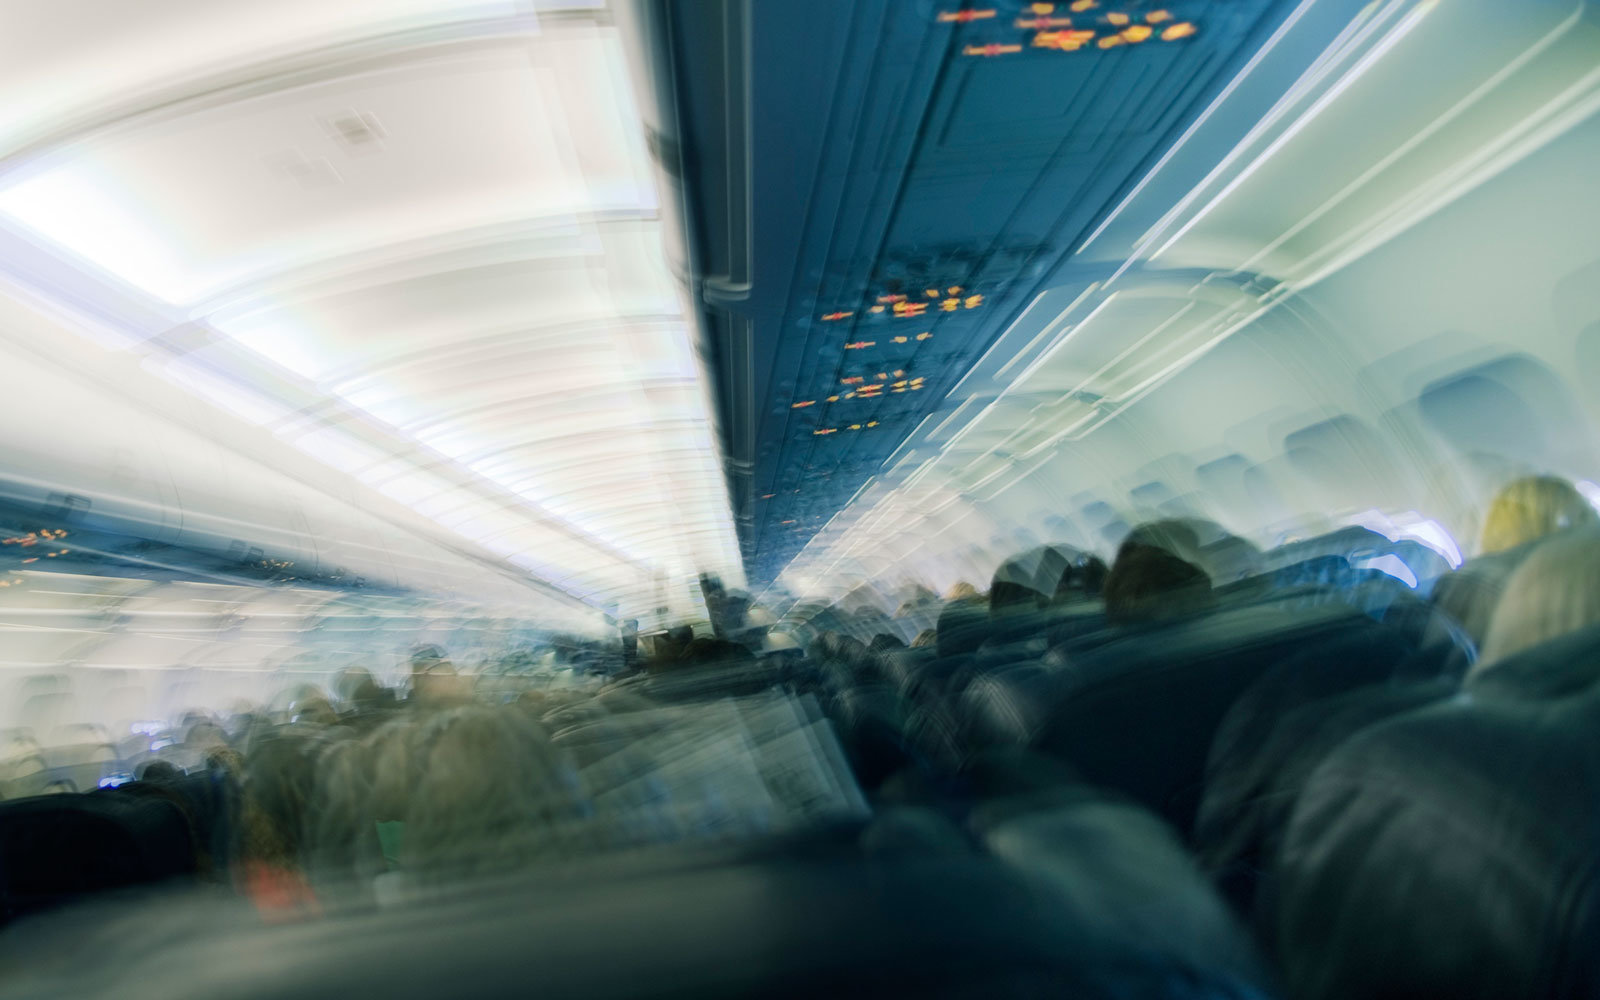 Severe air turbulence could become more common because of climate change.